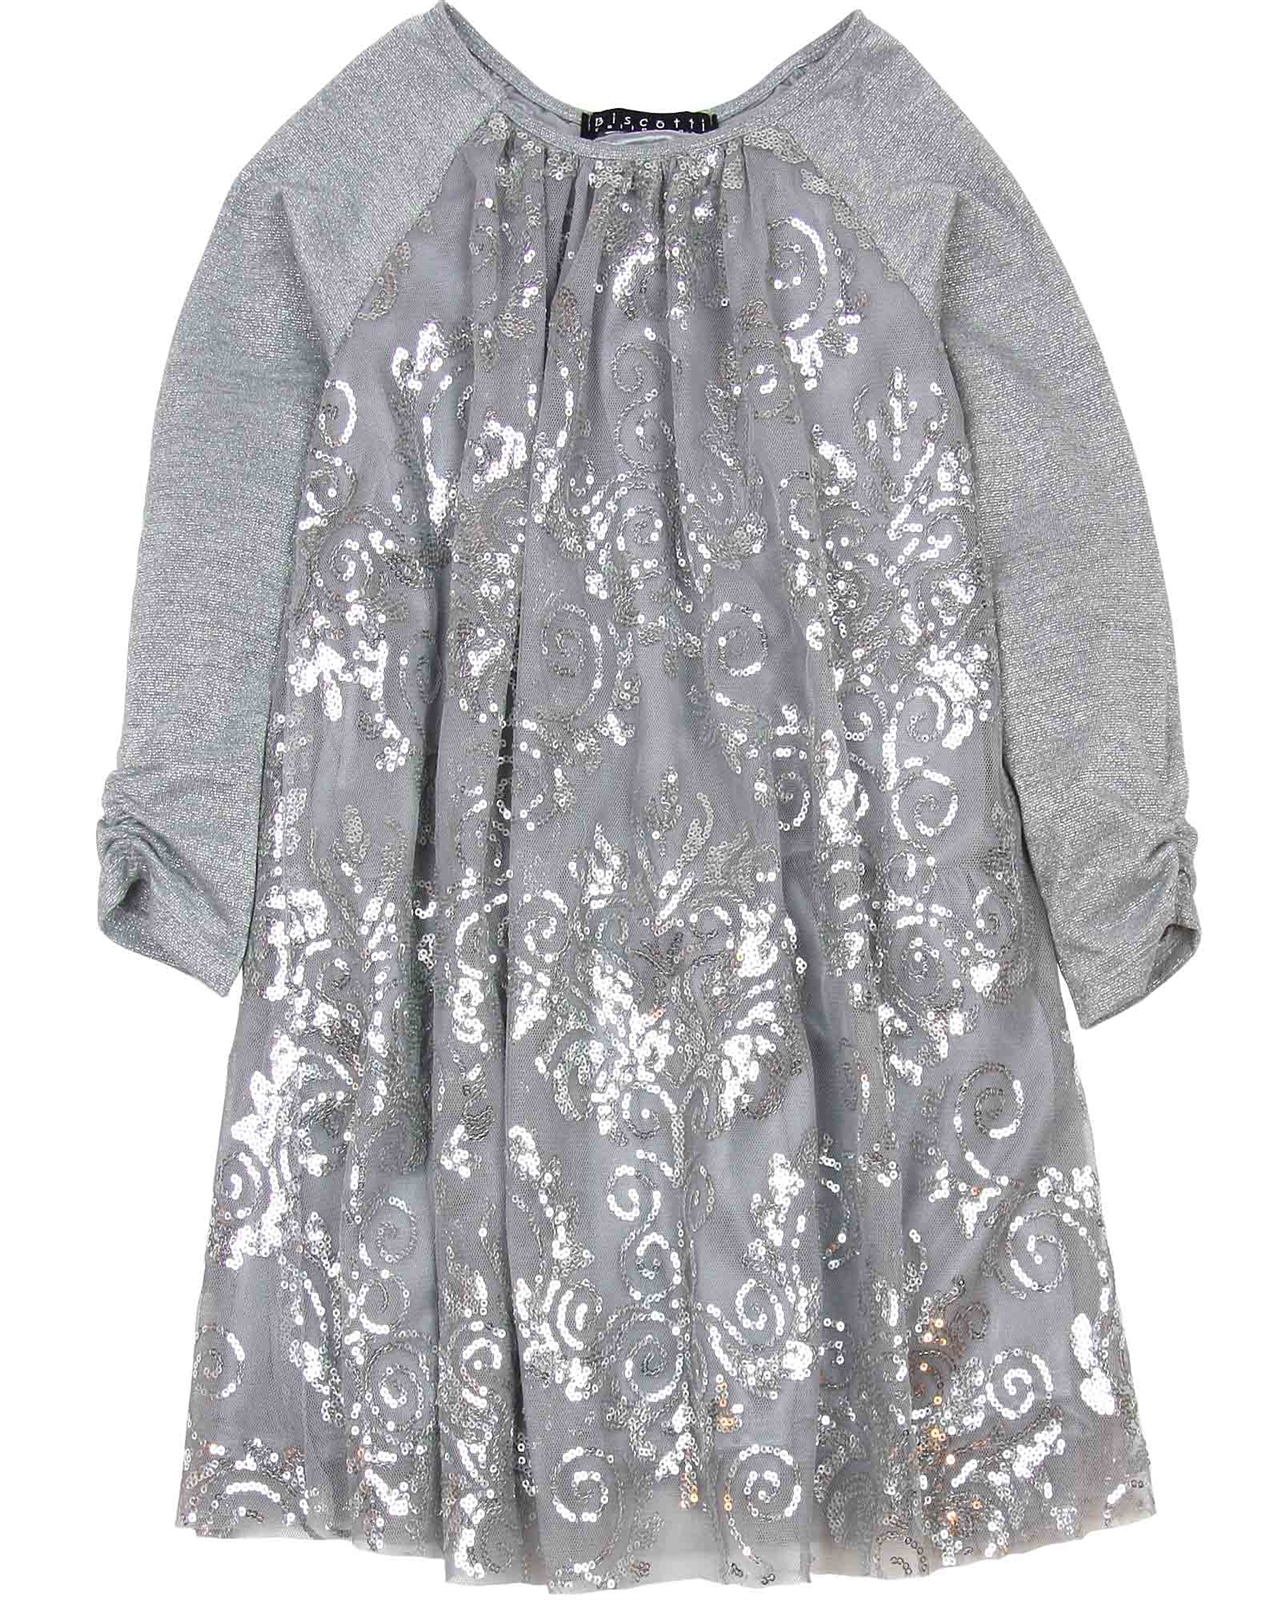 ba9339ae4 Biscotti Starry Night Dress with Sequins in Gray | Biscotti and Kate ...